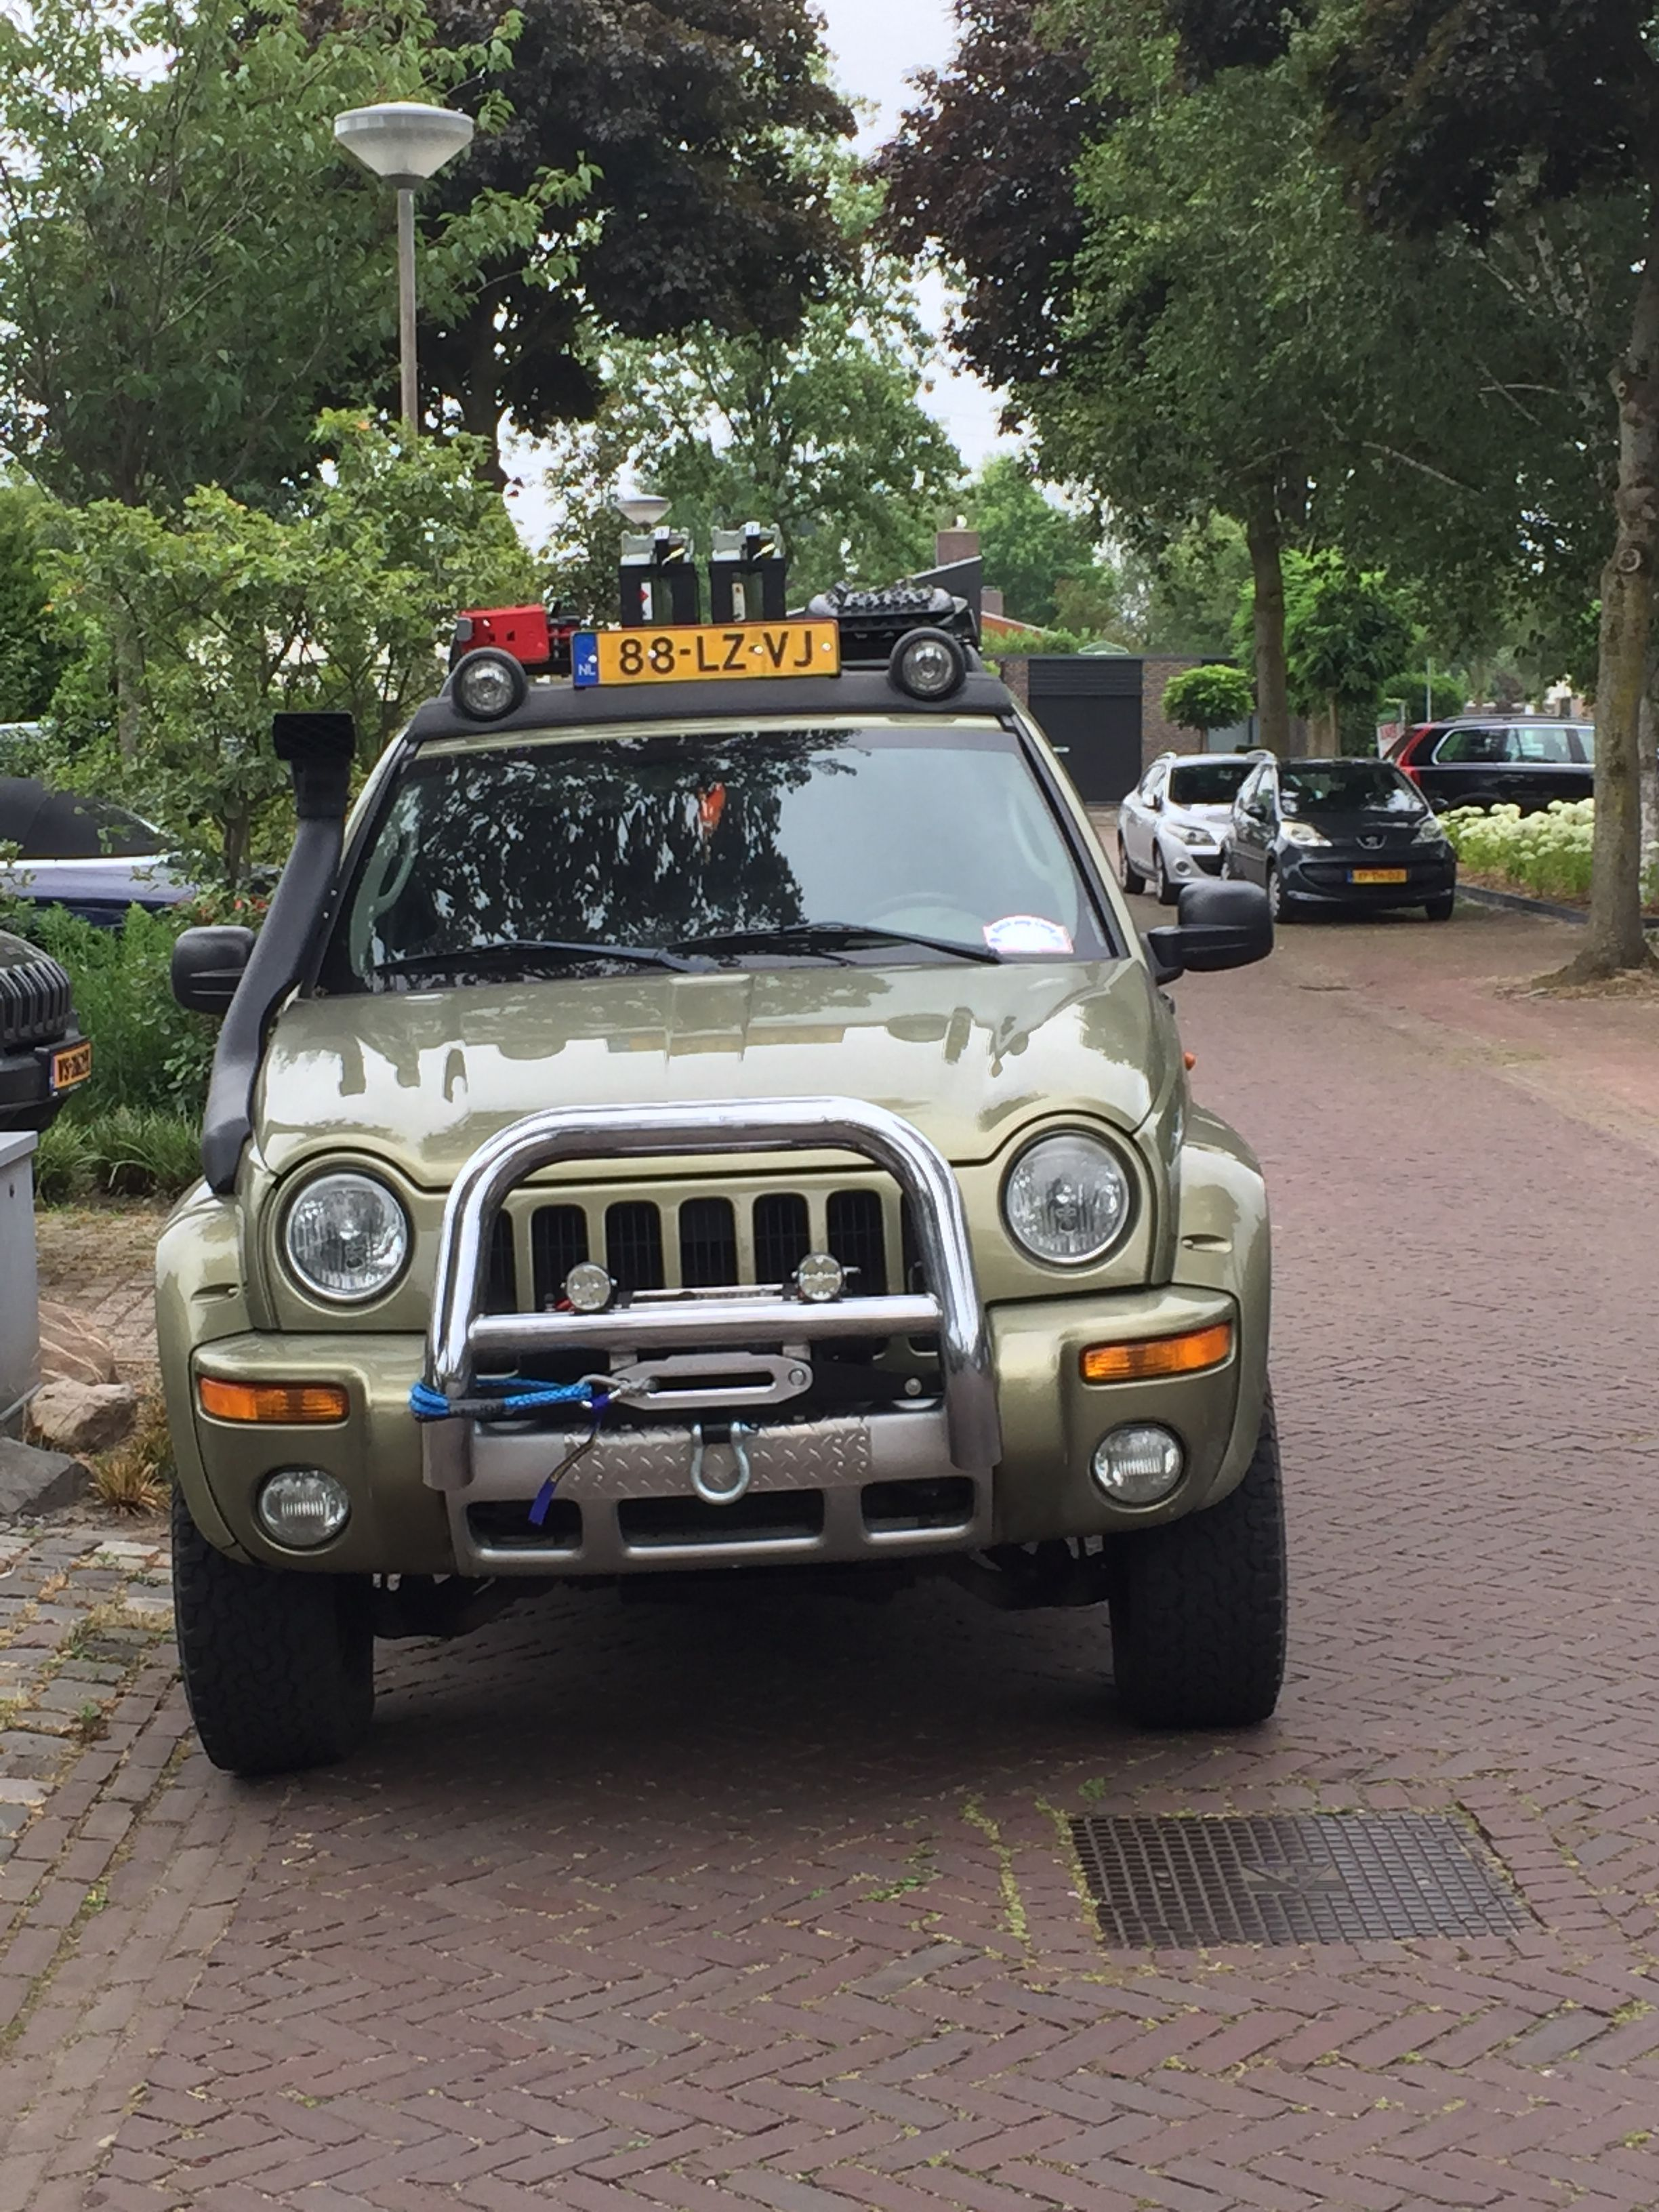 Jeep Kj Modified Winch Rock Sliders Rack With Cans Plates And